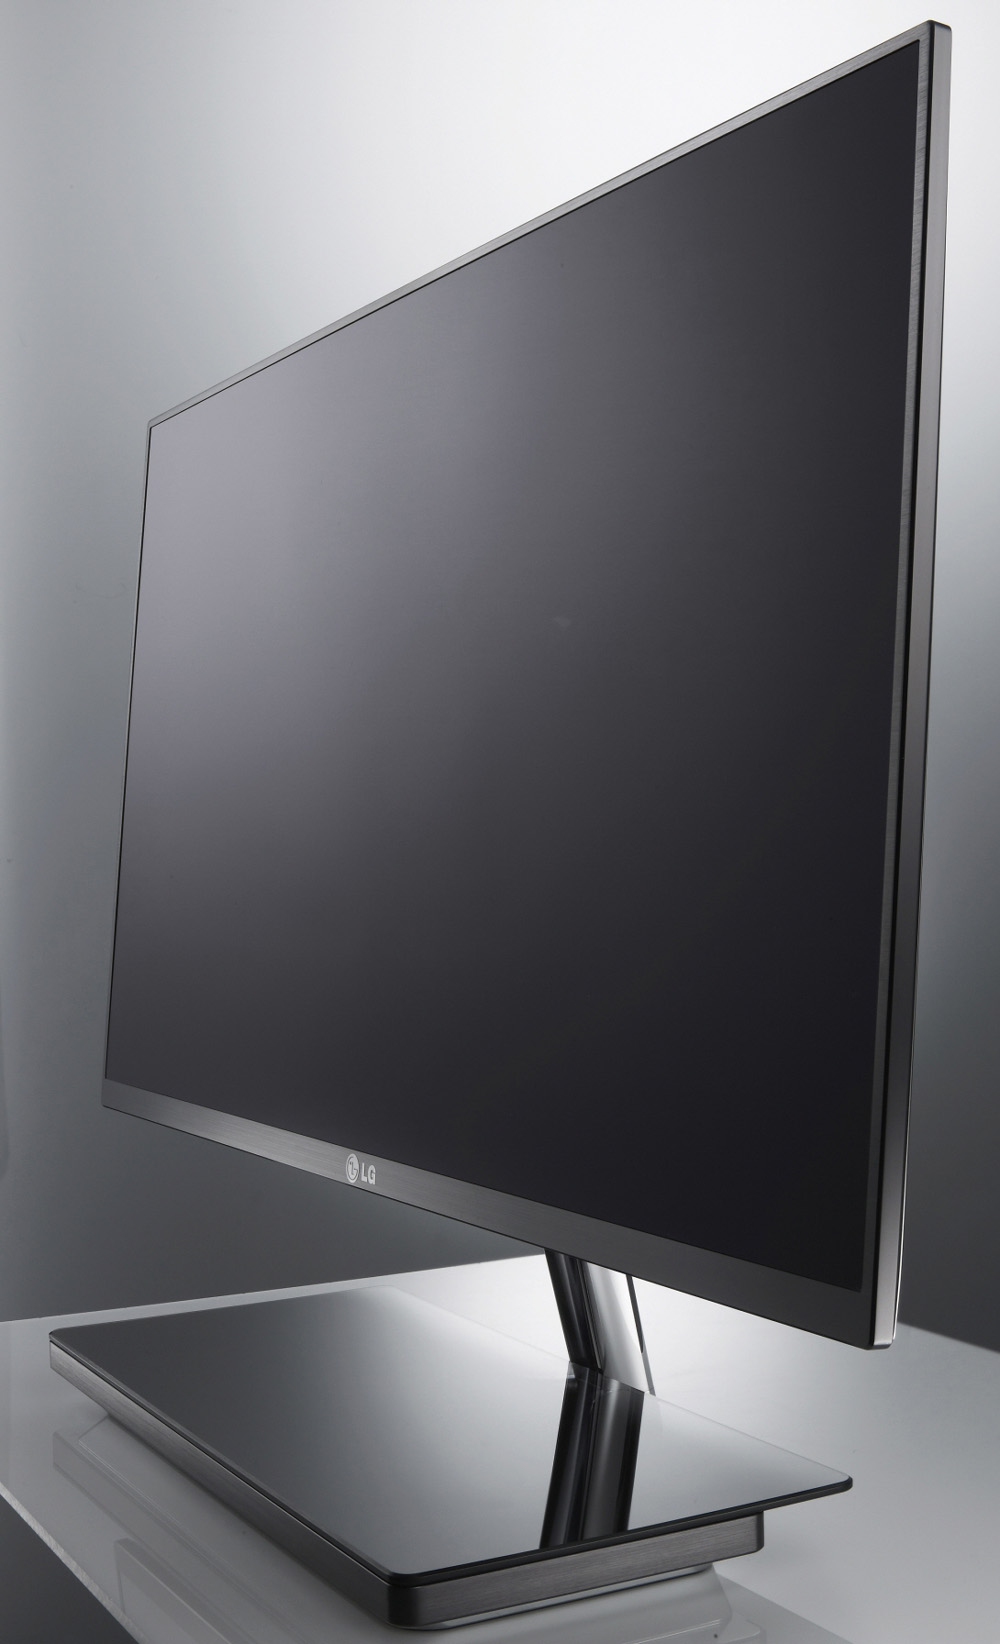 Front view of LG's E91 monitor rotated 70 degrees to the left